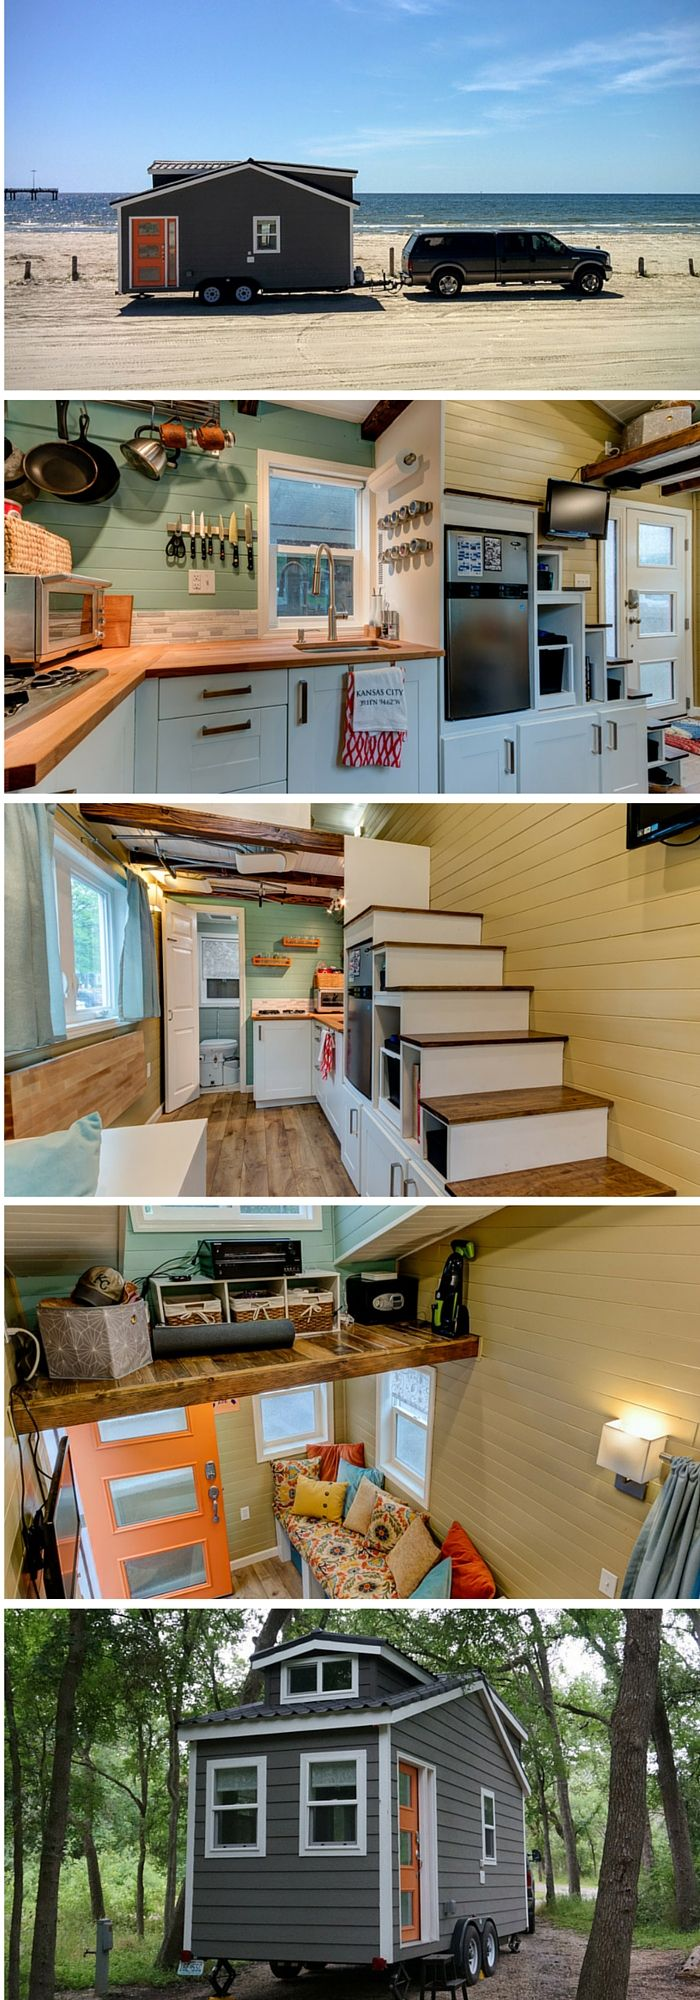 #tumbleweed #tinyhouses #tinyhome #tinyhouseplans The Wanderlust tiny home: a tiny house on wheels measuring under 200 sq ft.